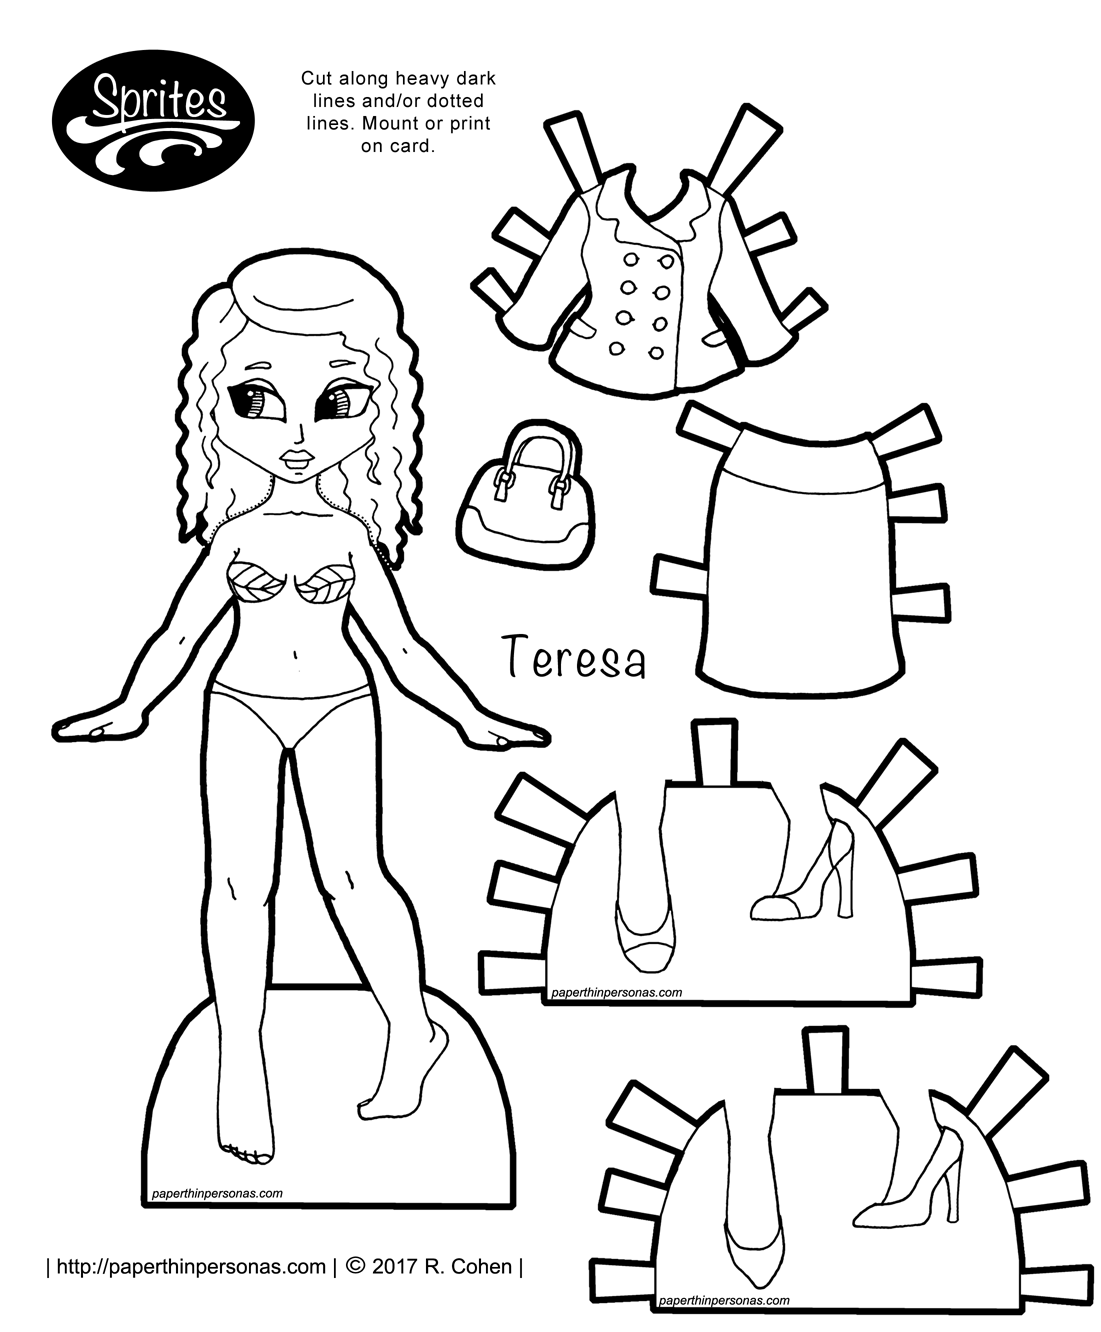 A latina fantasy paper doll based on clothing from the 12th century with a bliaut, shoes and long long braids. Print and color her from paperthinpersonas.com